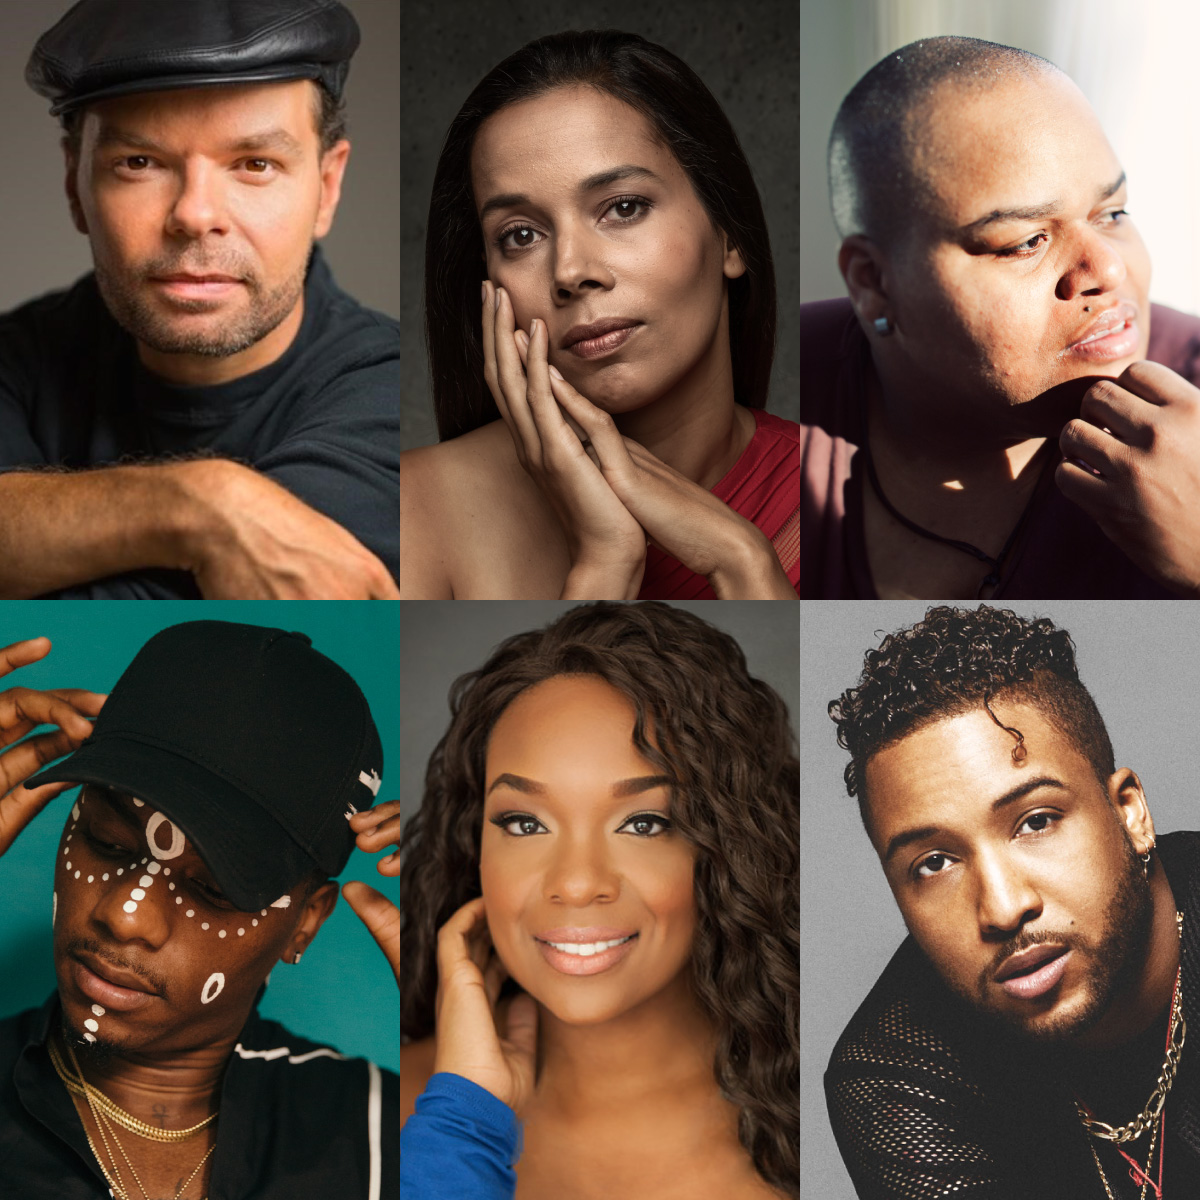 Lemon Andersen, Rhiannon Giddens, Toshi Reagon, Young Paris, Carrie Compere, and Ro James